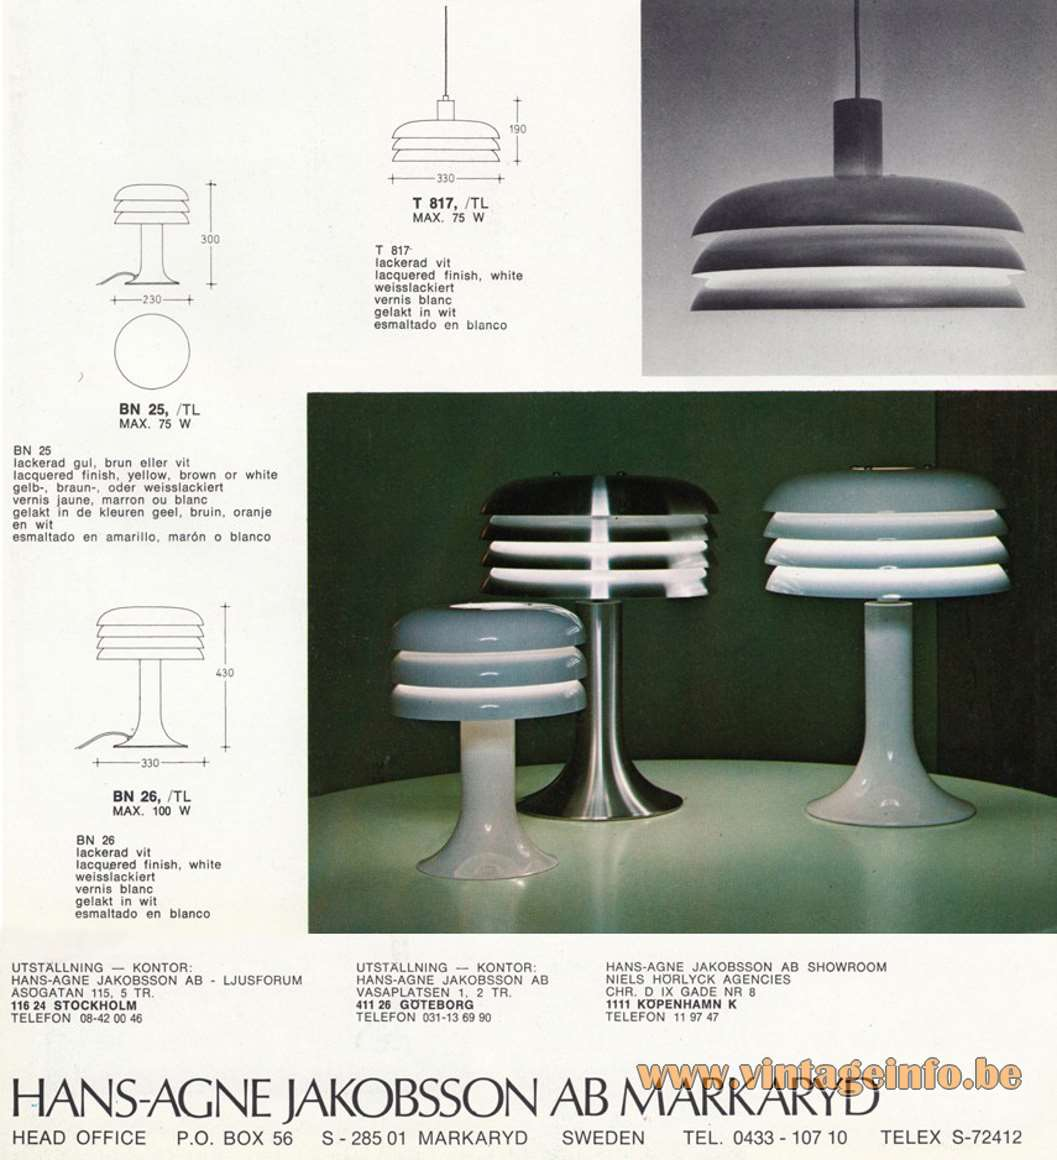 Hans-Agne Jakobsson Lamingo BN 25 Table Lamp - Catalogue pictures BN 25, BN 26 Table Lamps and T817 Pendant Lamp